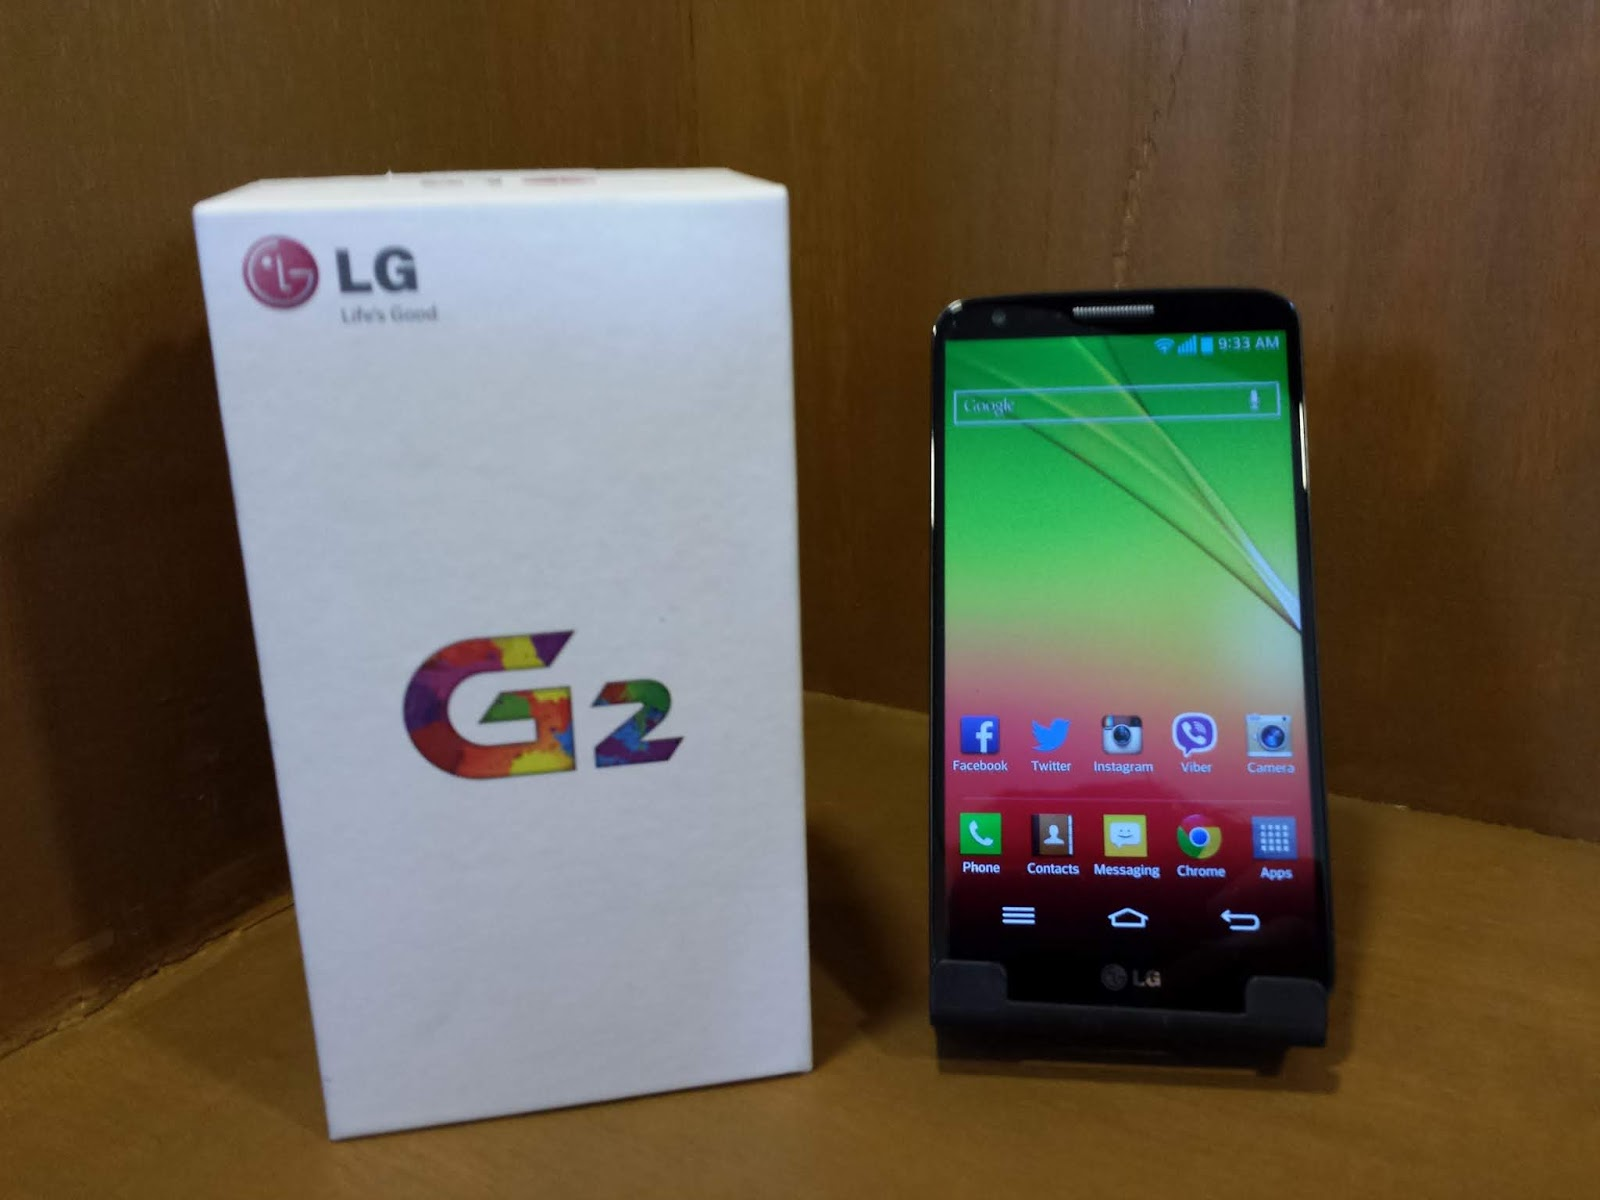 Download Lineage OS 17 for LG G2 based on Android 10